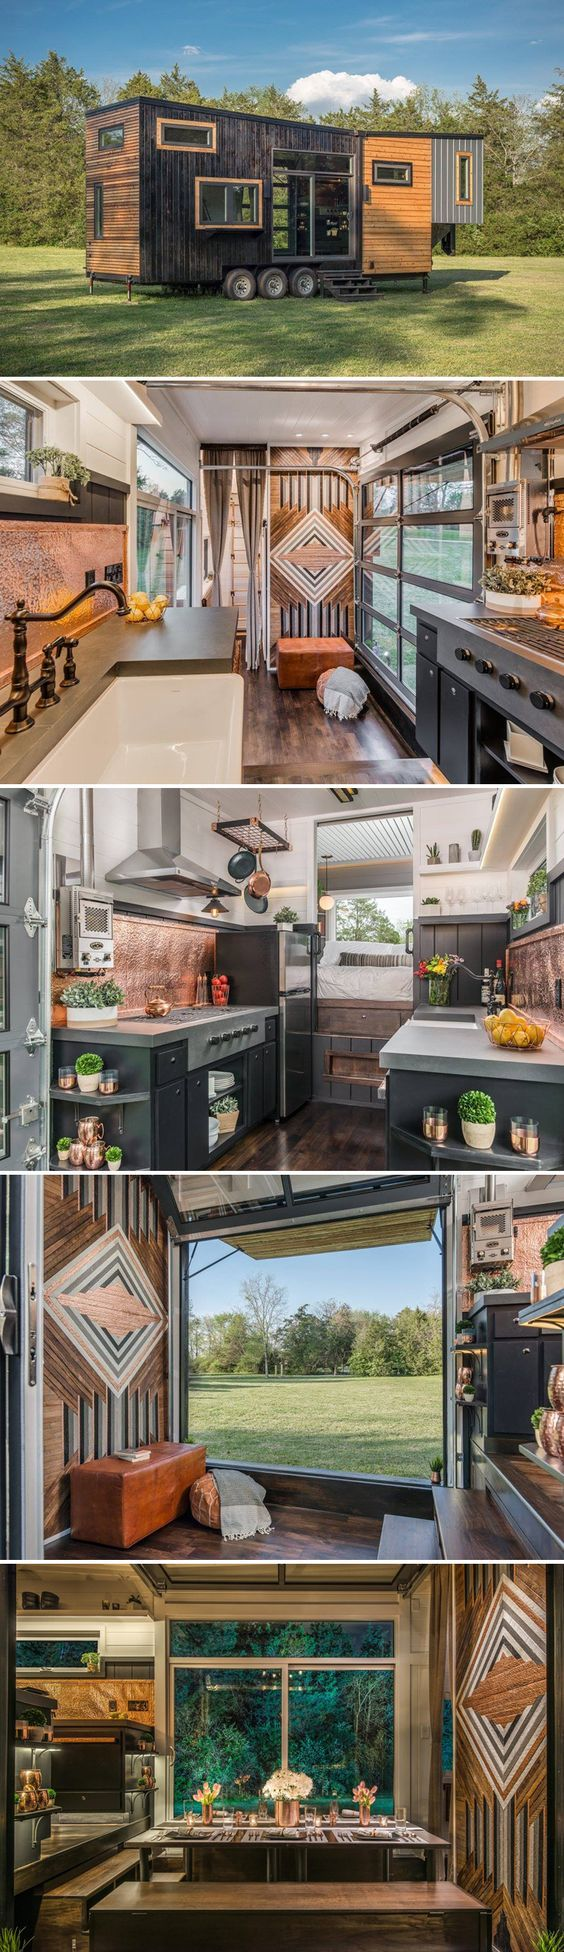 The Escher is a luxury gooseneck tiny house built by New Frontier Tiny Homes. The home features a gourmet kitchen and nested dining table that seats 12.